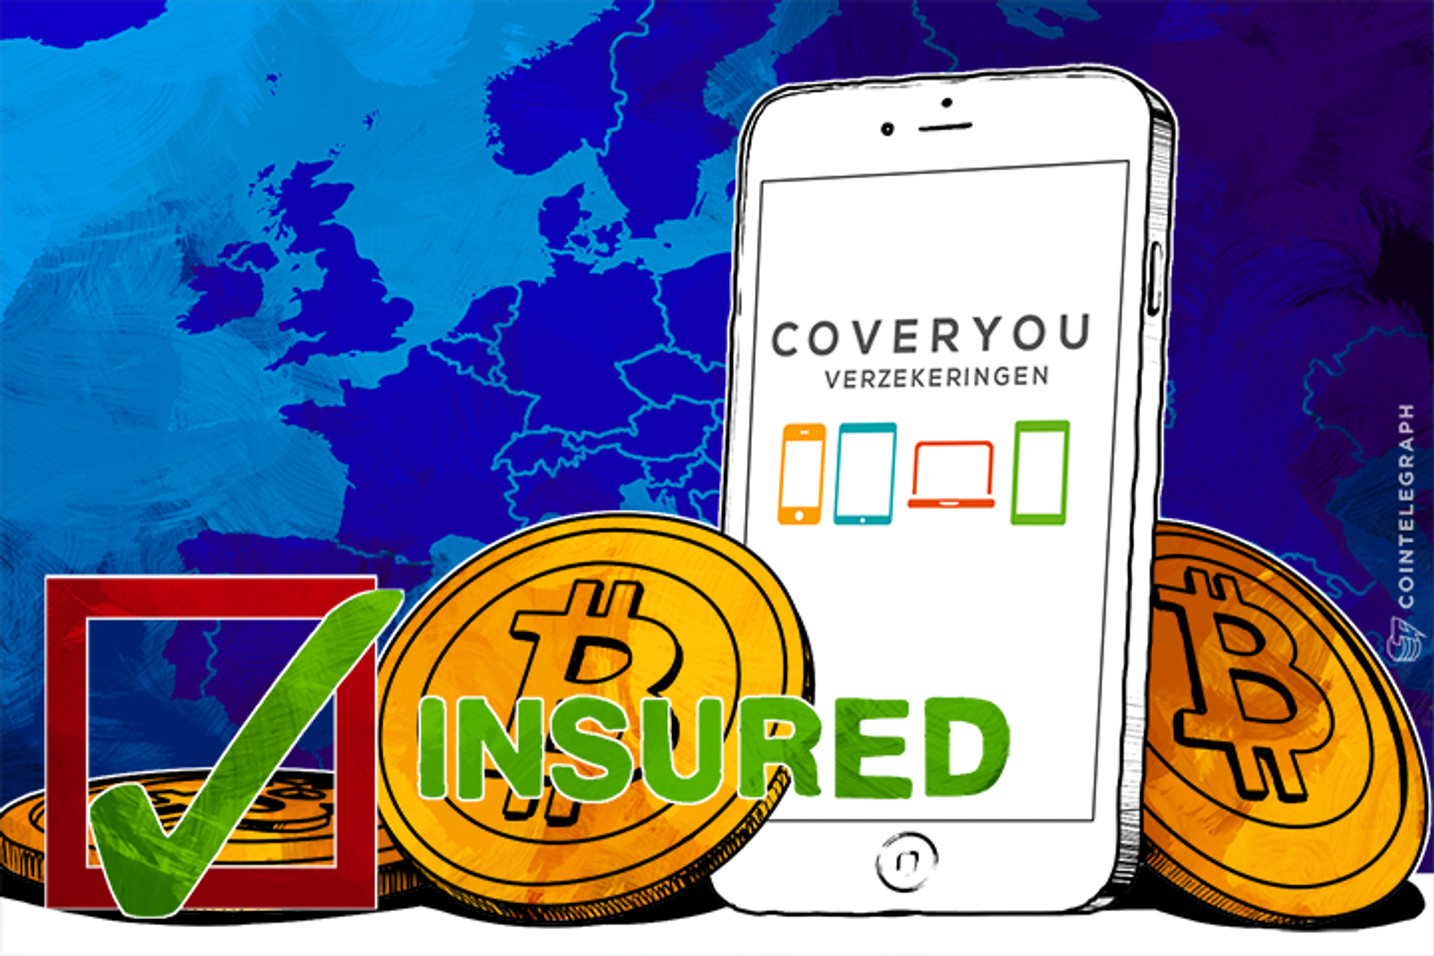 CoverYou: The First European Insurer to Accept Bitcoin for Premium Payment